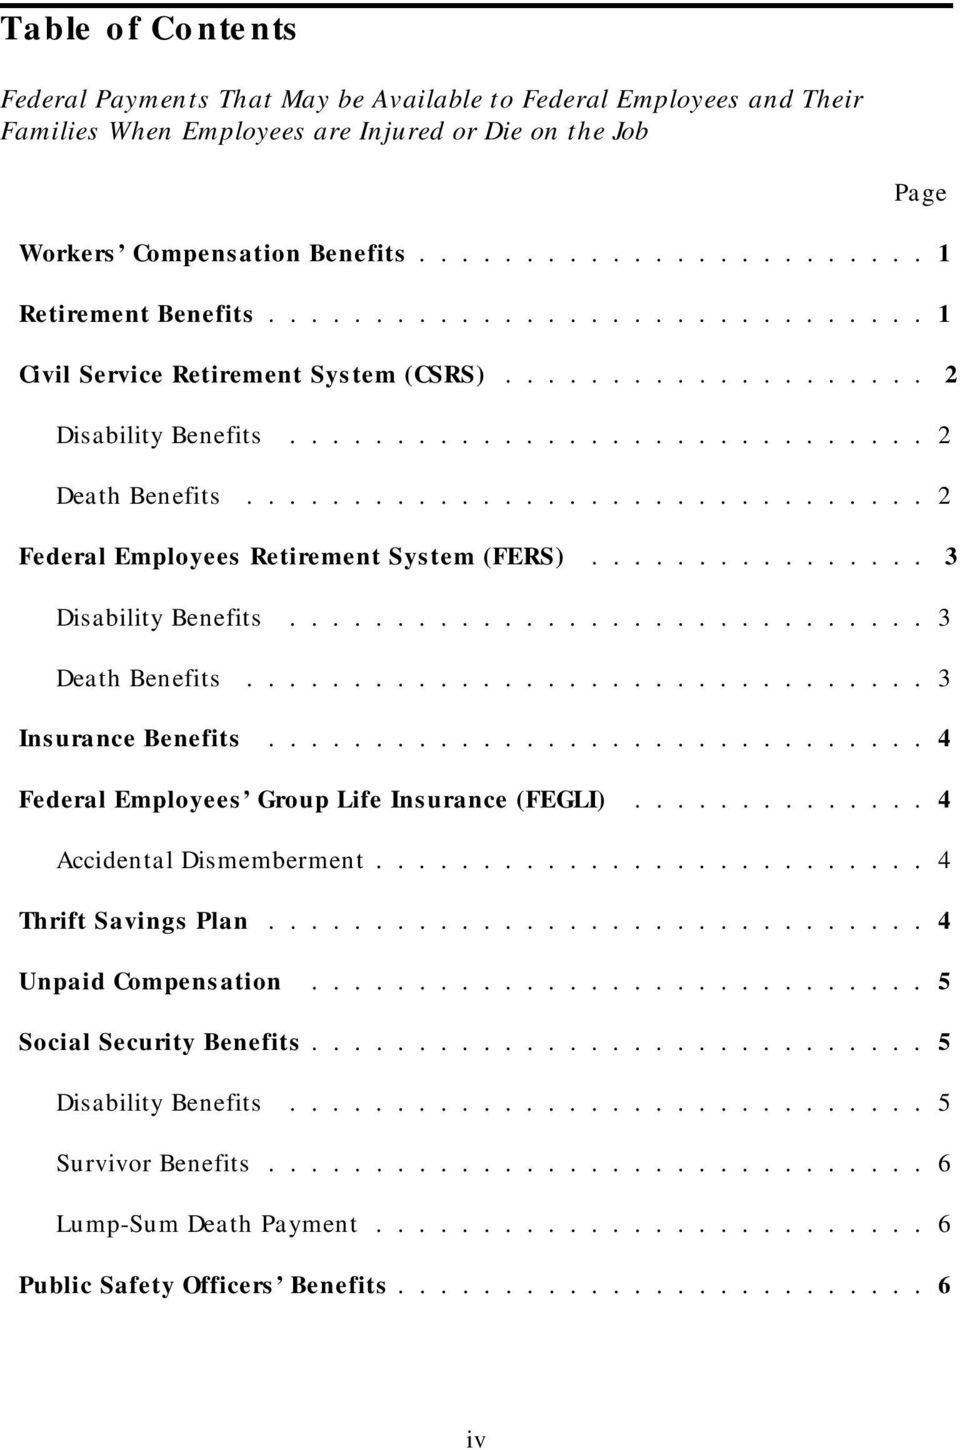 ............................... 2 Federal Employees Retirement System (FERS)................ 3 Disability Benefits.............................. 3 Death Benefits................................ 3 Insurance Benefits.